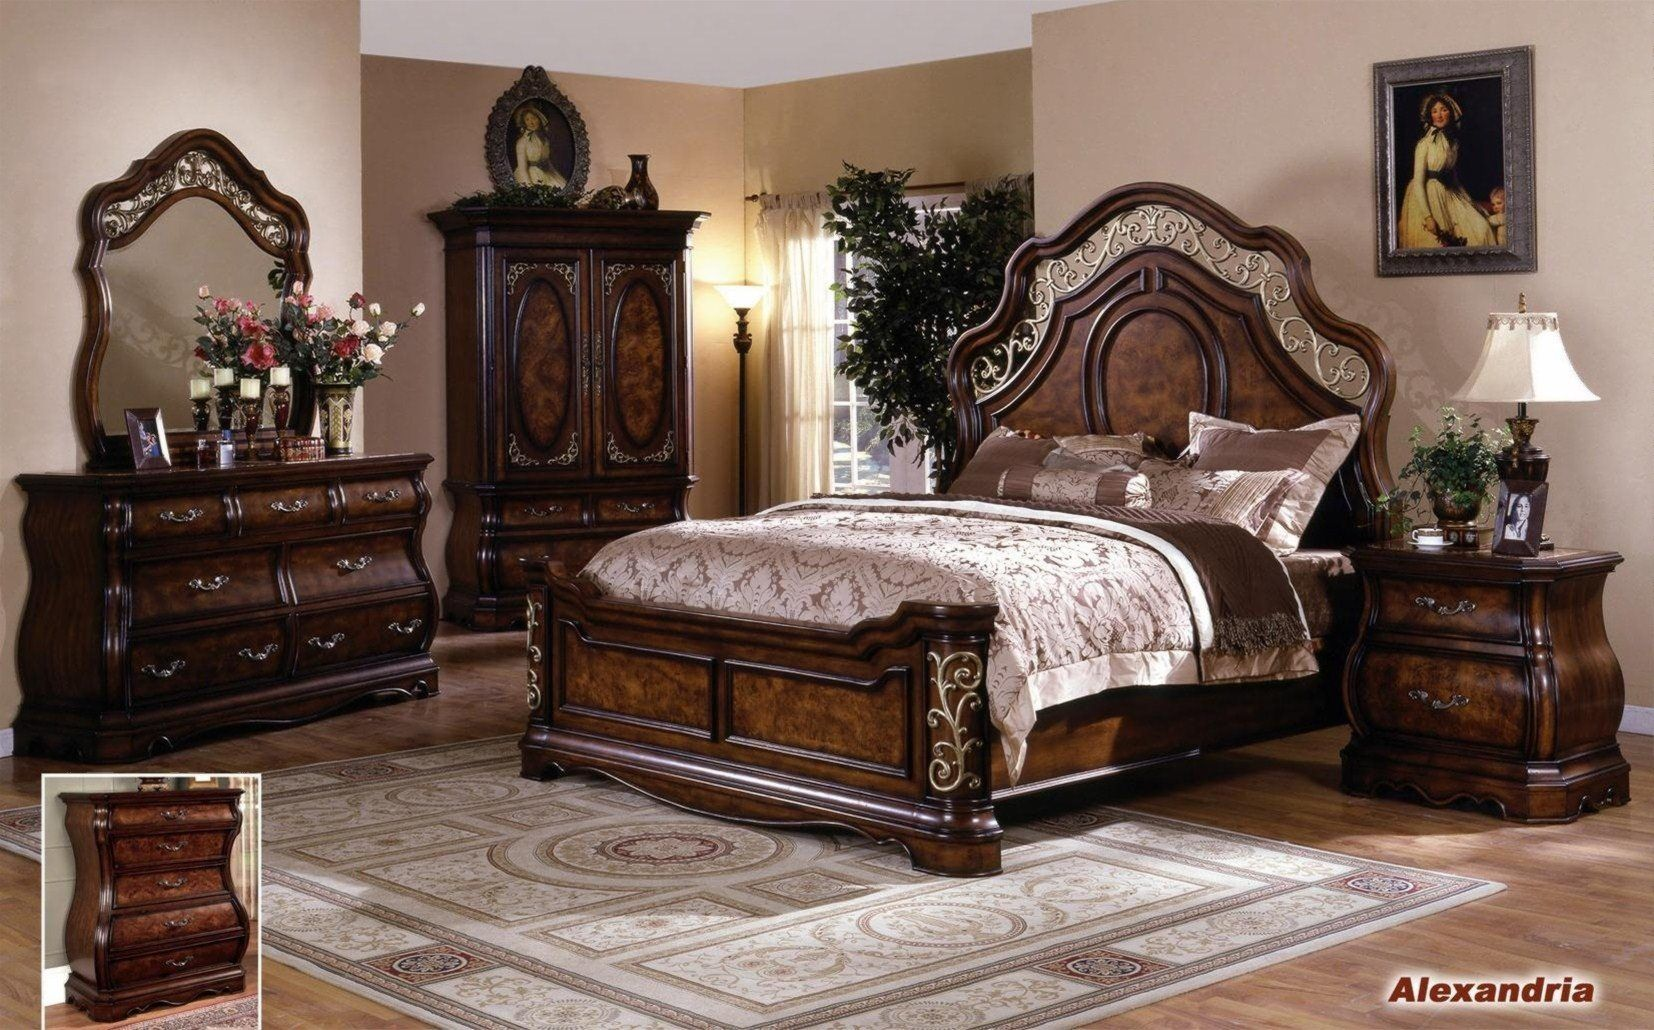 traditional bedroom set. Alexandria Elegant Solid Wood Traditional Bedroom Set by Empire Furniture  Design